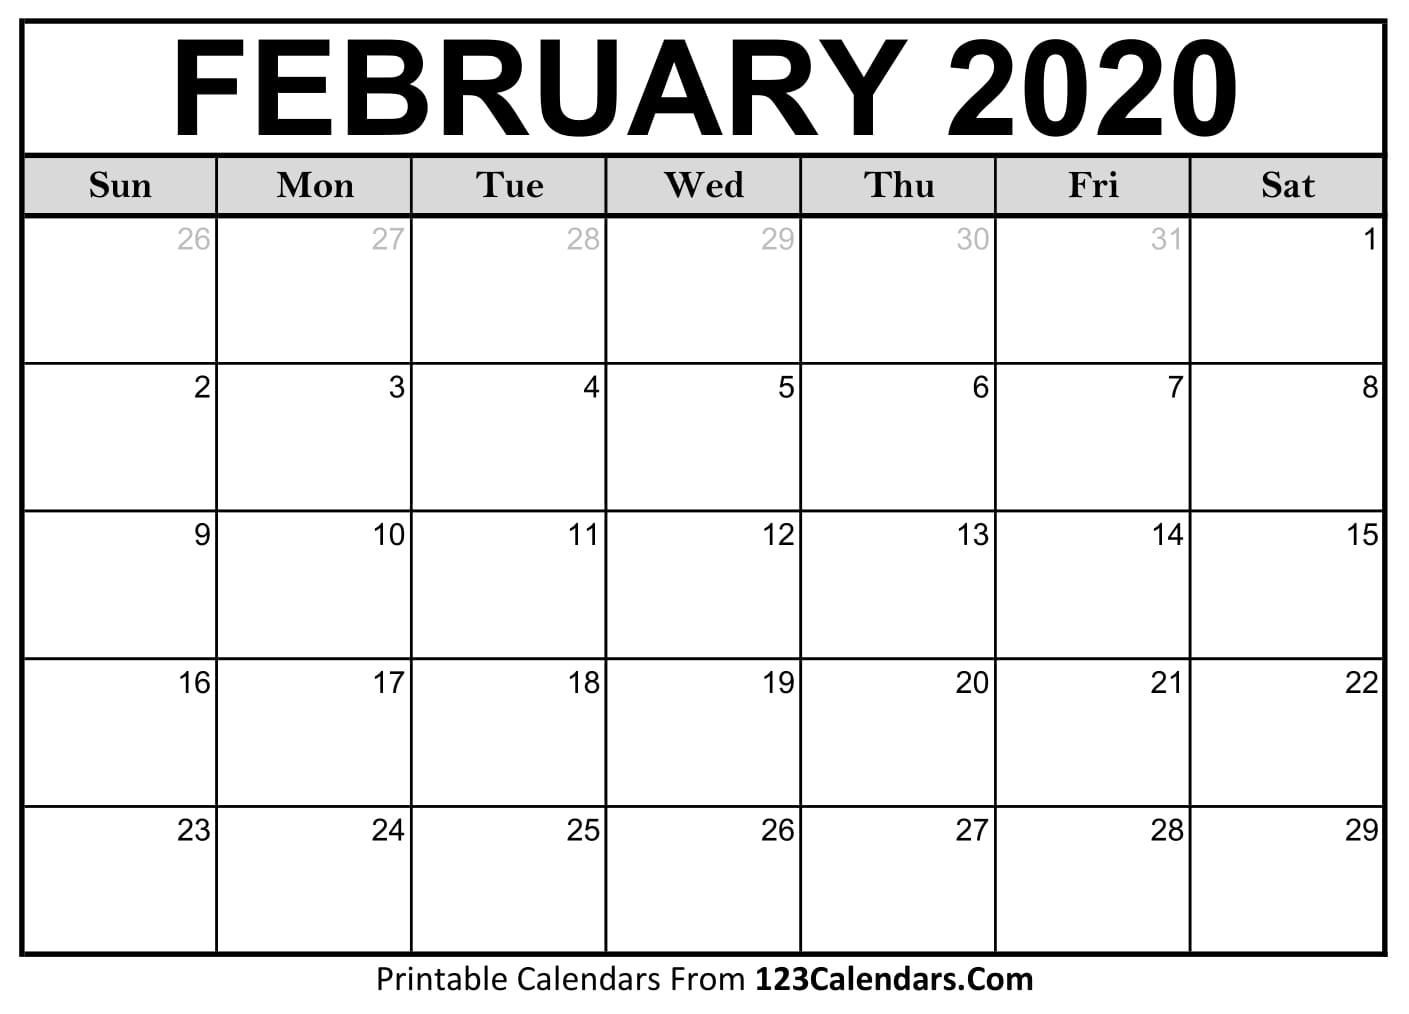 Monthly Calendar February 2020 Printable  Bolan intended for January 2020 Calendar 123Calendars